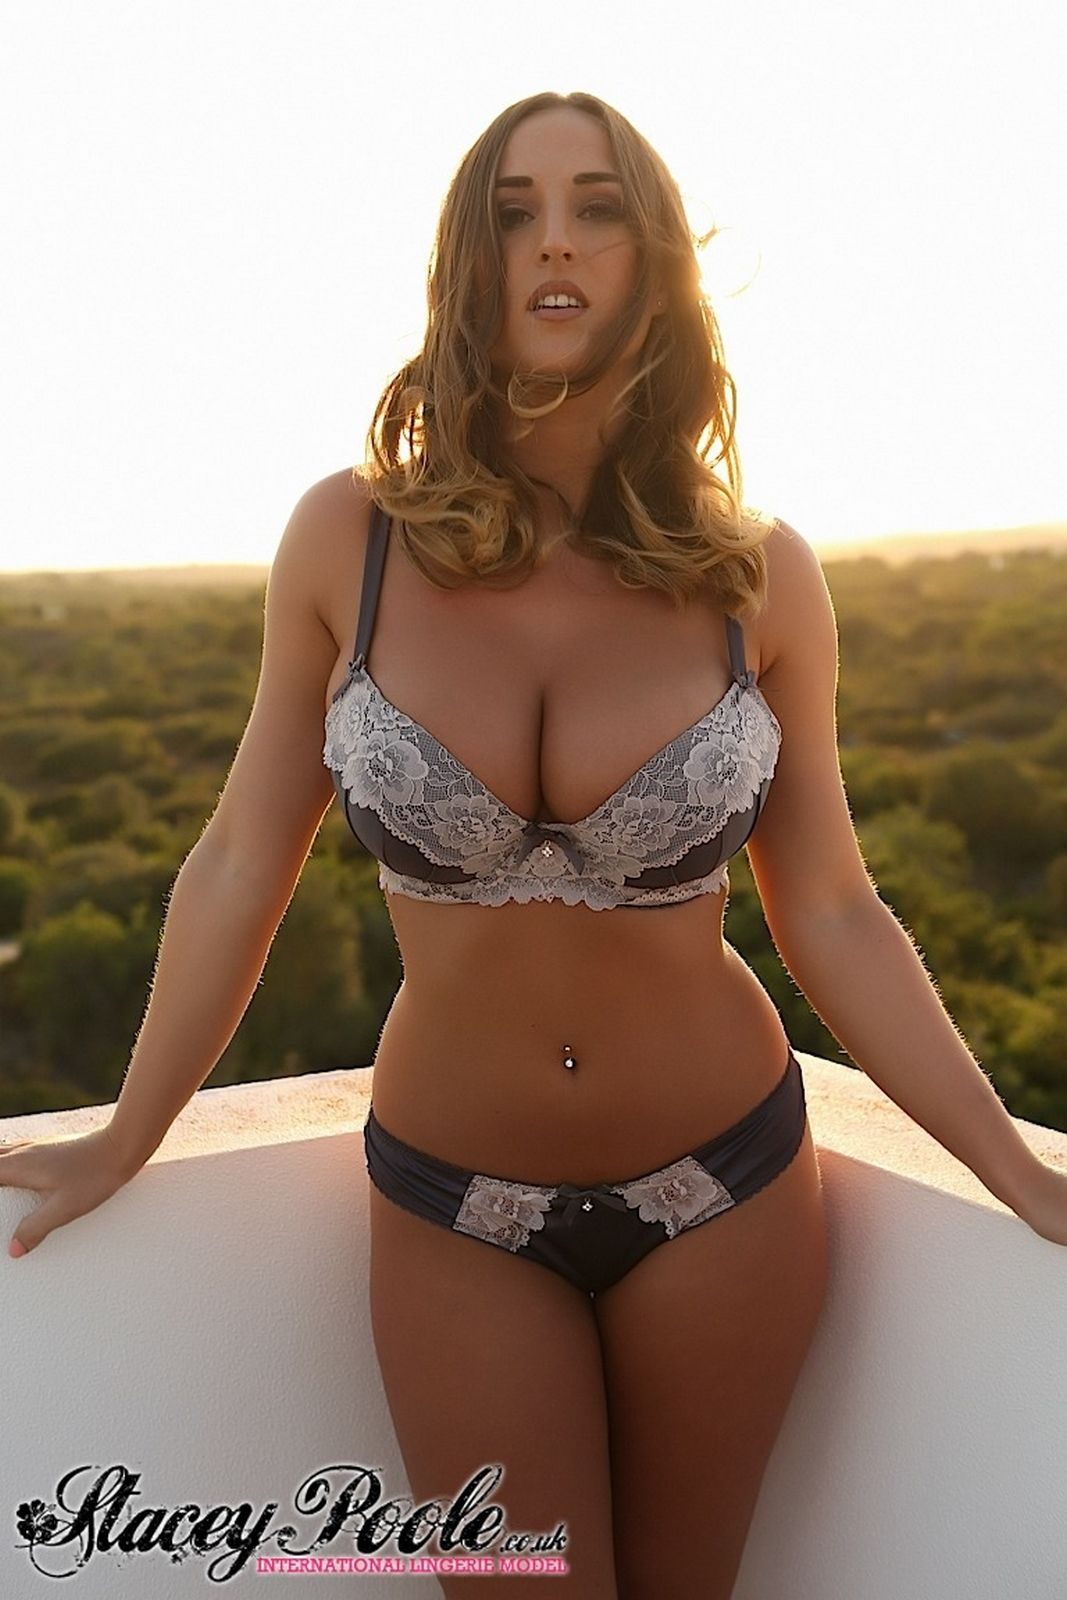 Stacey Poole Photos photo 16